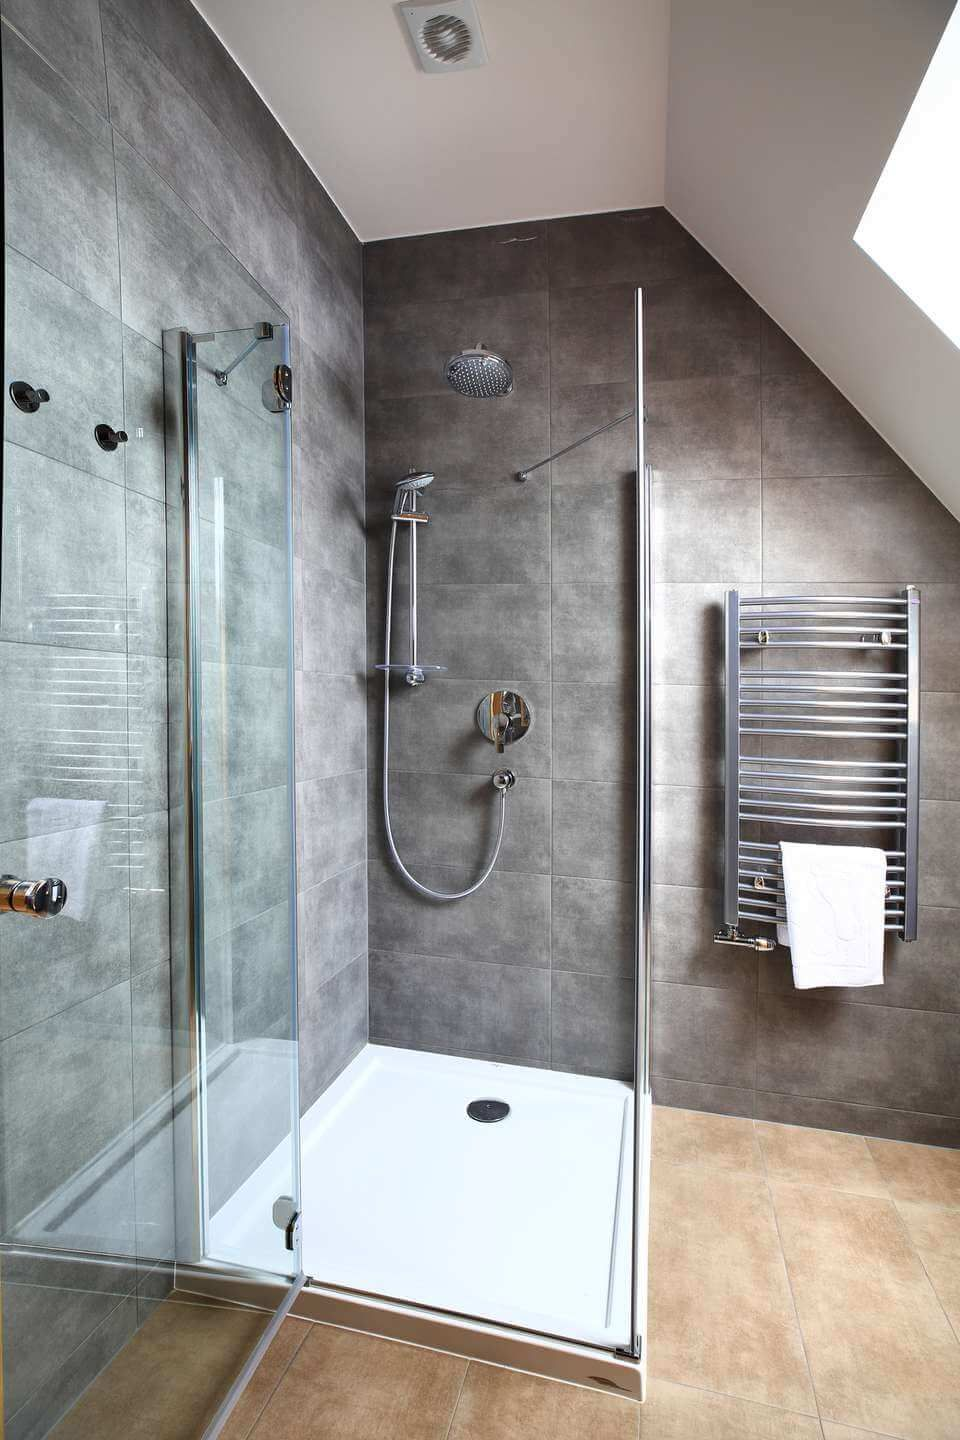 Make Your Body Relax With Your Own Made Shower Pan Get These Easy Ideas About How To Build A Shower Pan With Picture Guidance Sho Building A Shower Pan Shower Pan